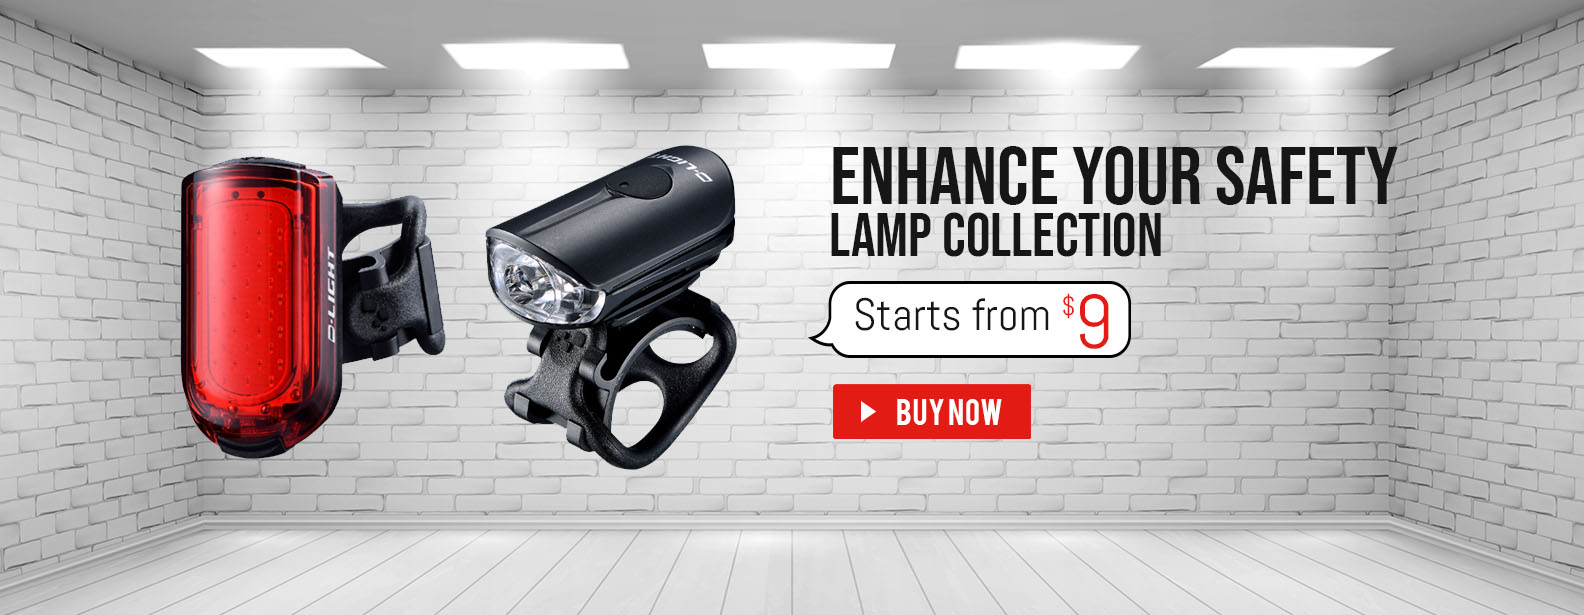 Buy Lamp Collection